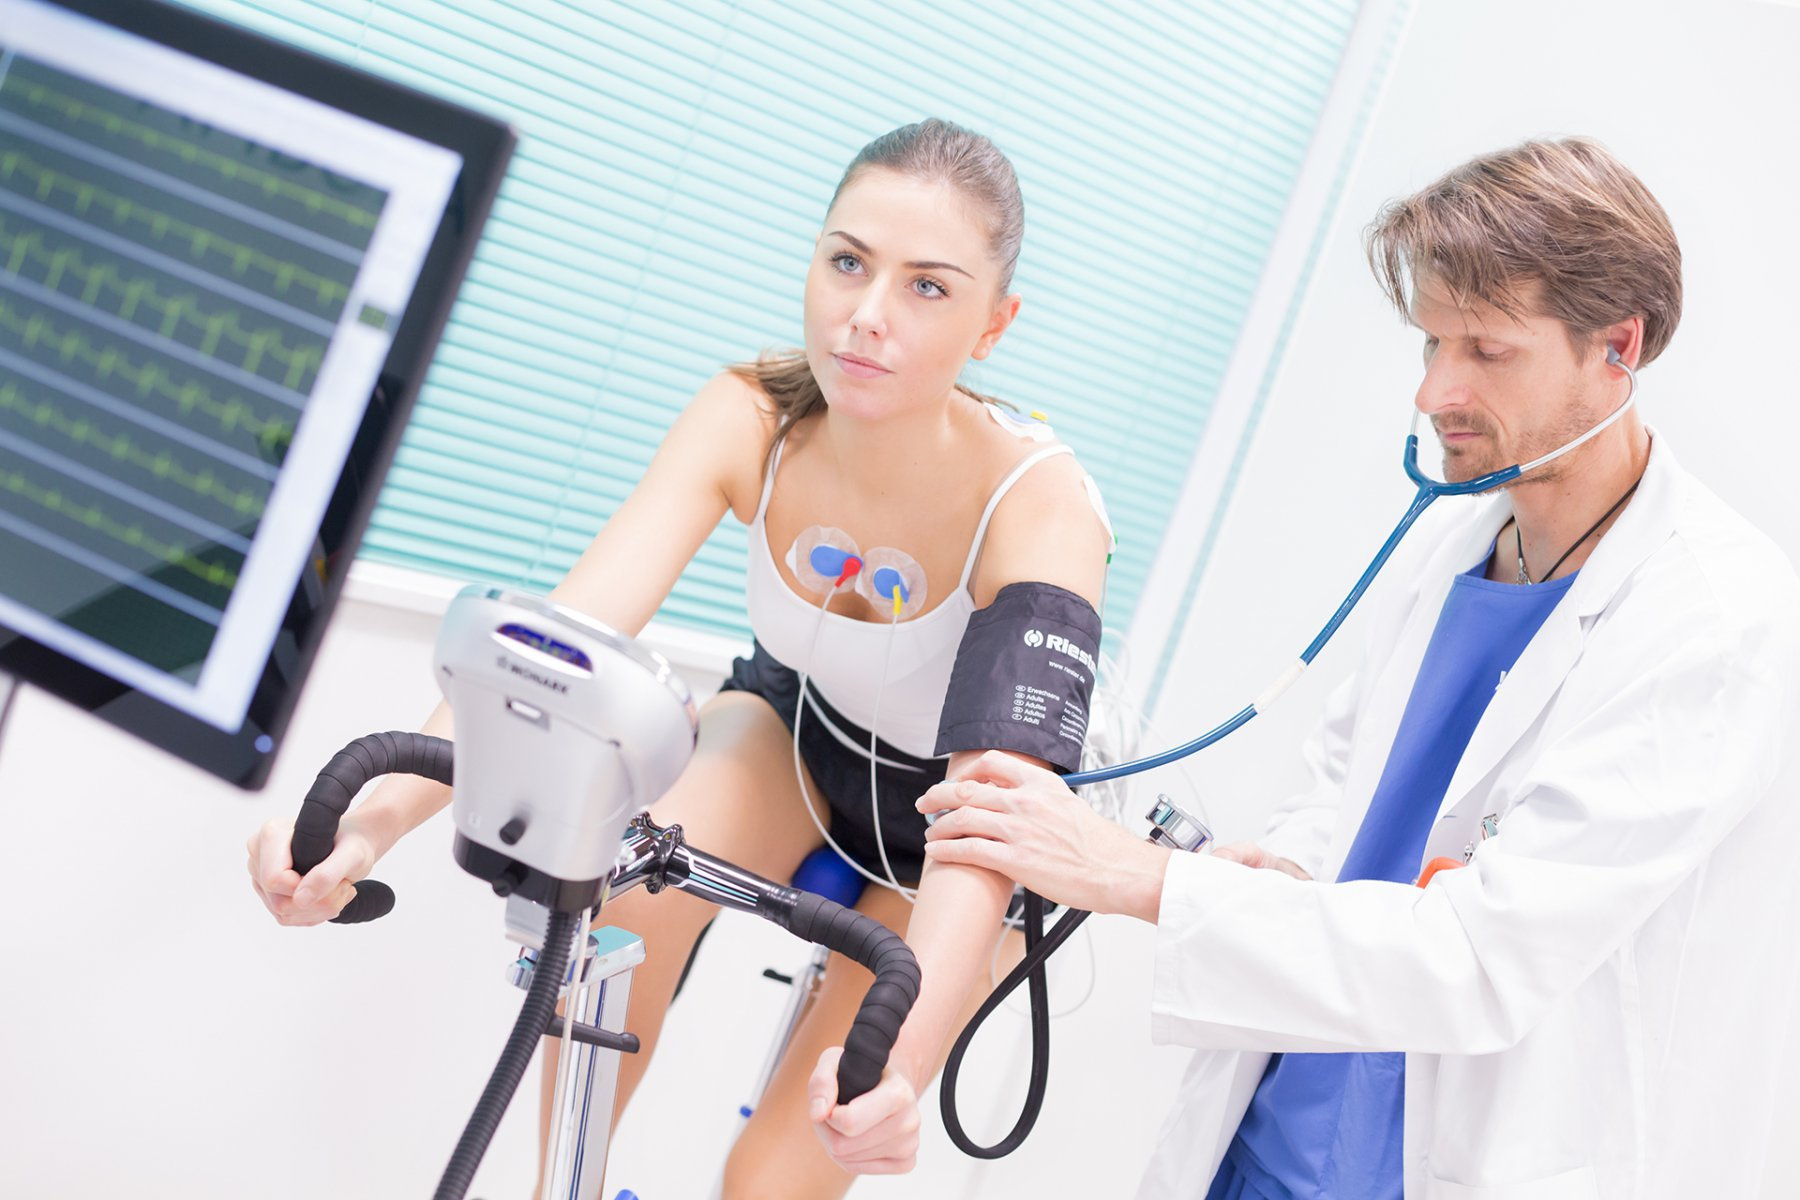 improvements in sports medicine The sports medicine center at eastside specialty center offers a full range of sports medicine services to athletes and people of all ages and abilities in a convenient, comfortable and patient-friendly setting.